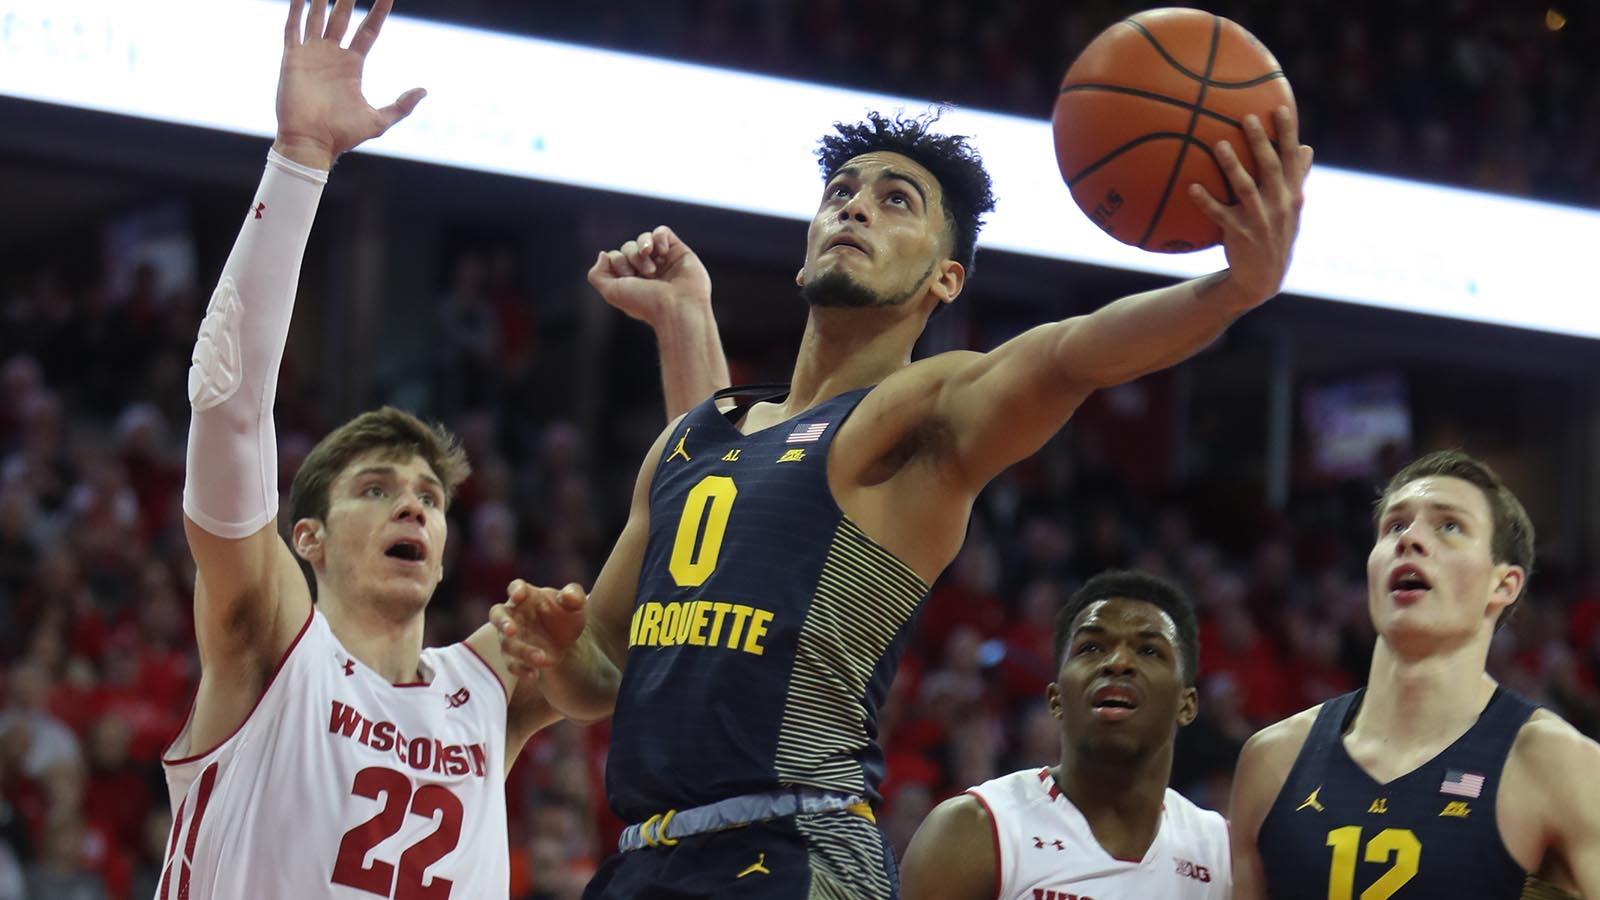 Dec 9, 2017; Madison, WI, USA; Marquette Golden Eagles guard Markus Howard (0) attempts a basket as Wisconsin Badgers forward Ethan Happ (22) looks on at the Kohl Center. Mandatory Credit: Mary Langenfeld-USA TODAY Sports